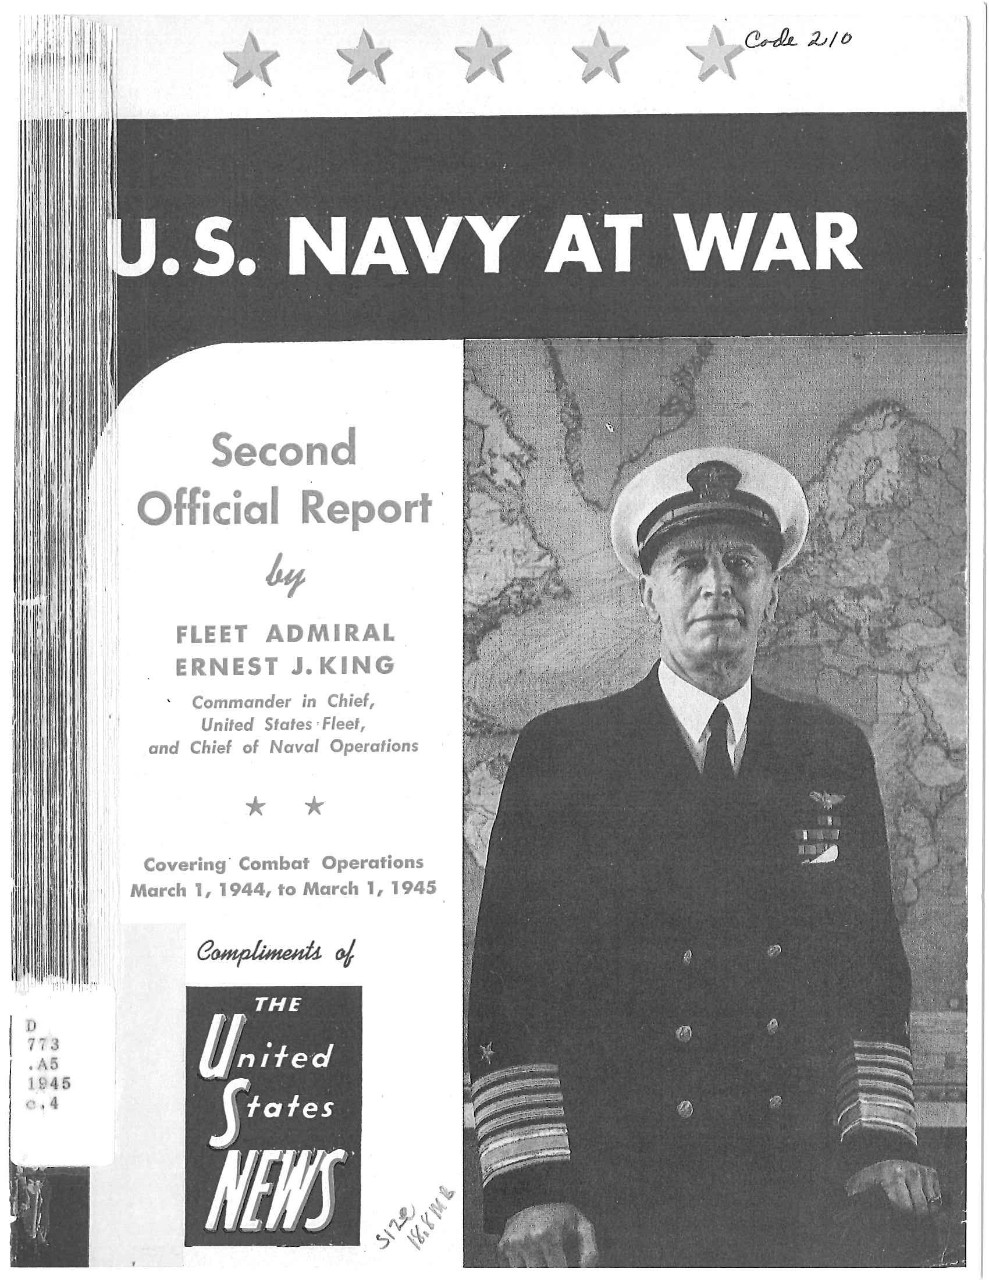 U.S. Navy at War, Second Official Report